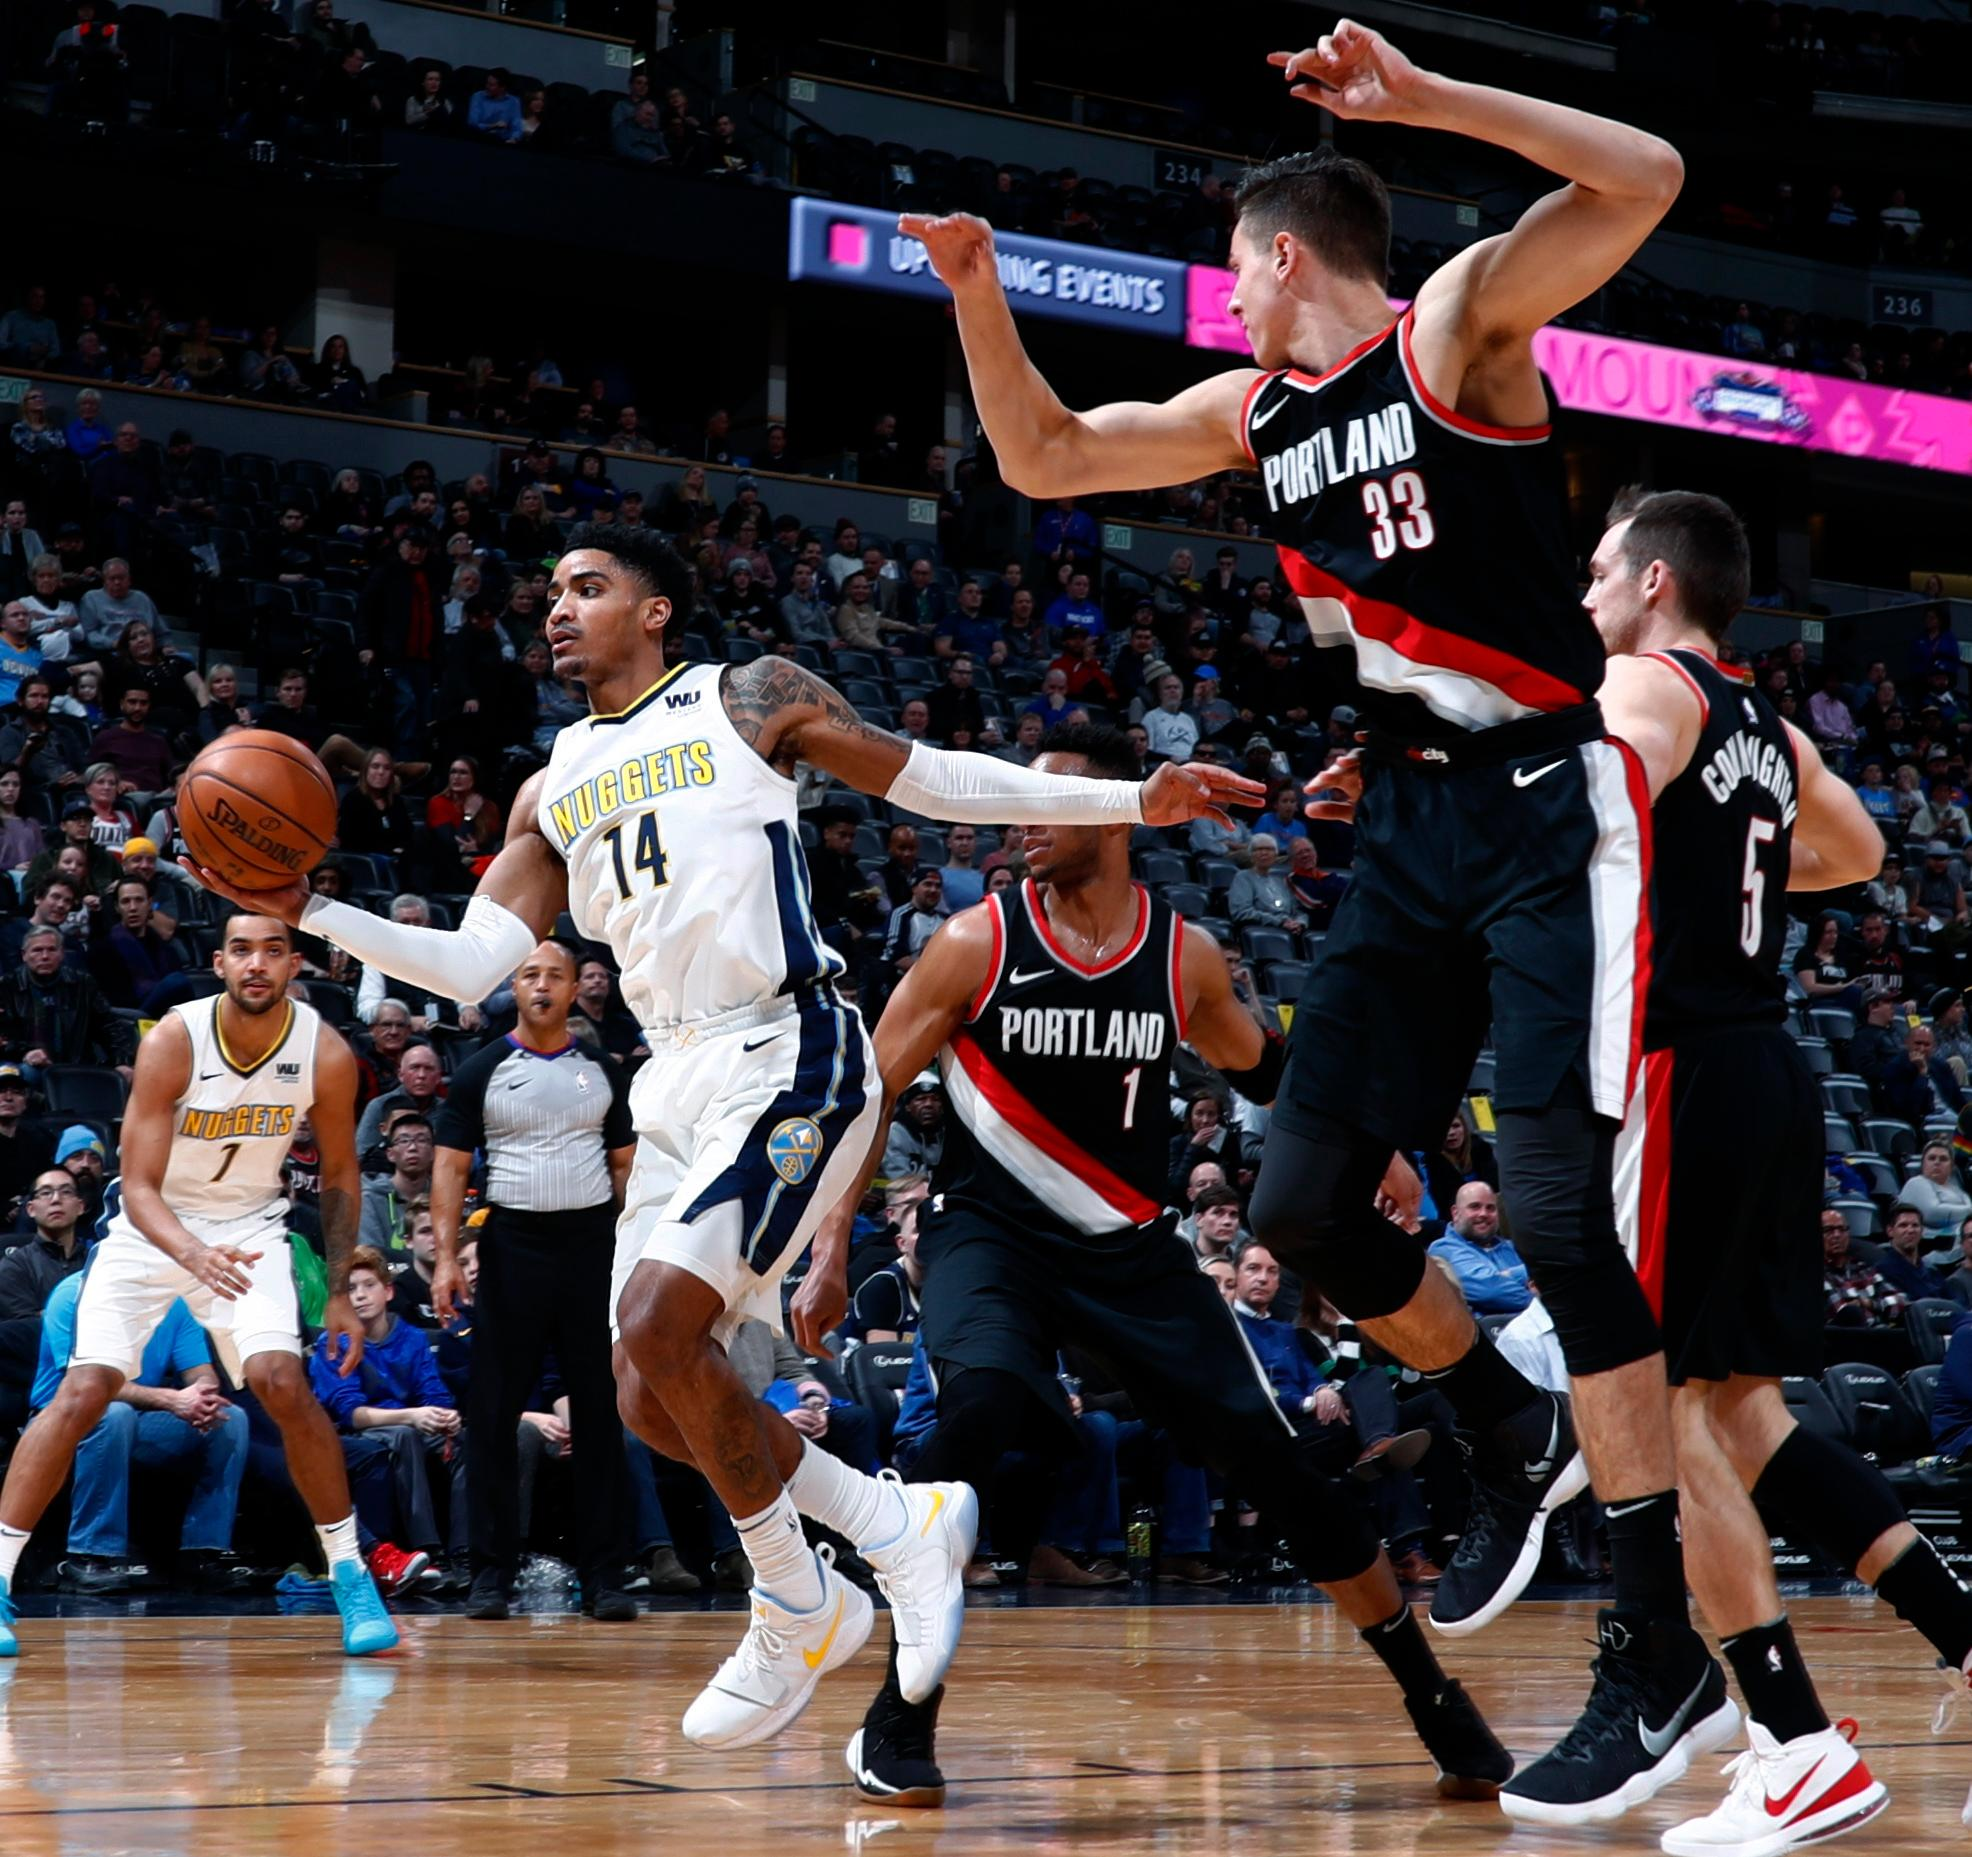 Denver Nuggets guard Gary Harris pulls in the ball as Portland Trail Blazers center Zach Collins (33) defends in the first half of an NBA basketball game Monday, Jan. 22, 2018, in Denver. (AP Photo/David Zalubowski)